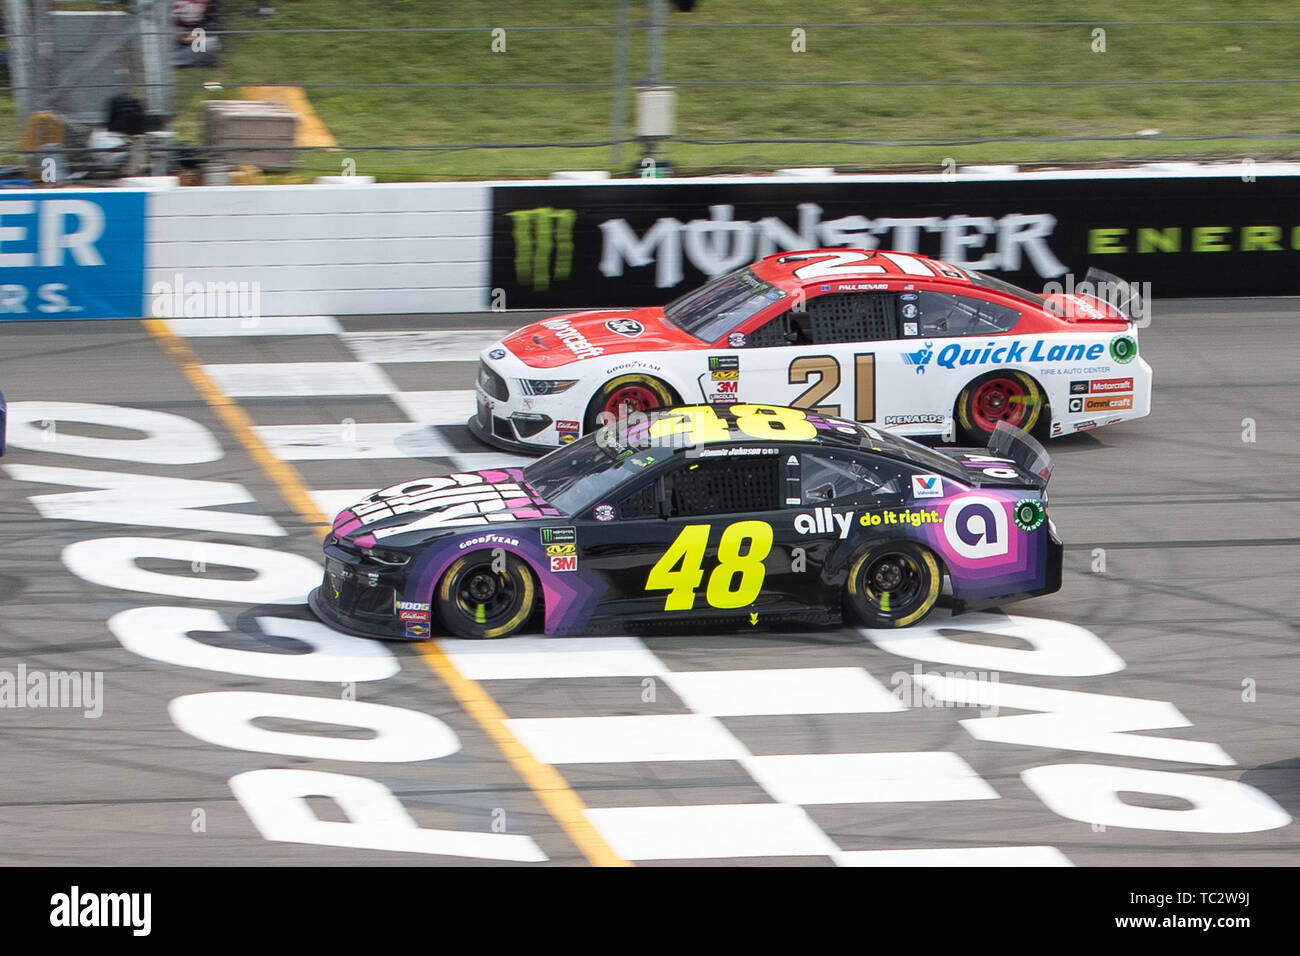 June 02, 2019: Monster Energy NASCAR Cup Series drivers